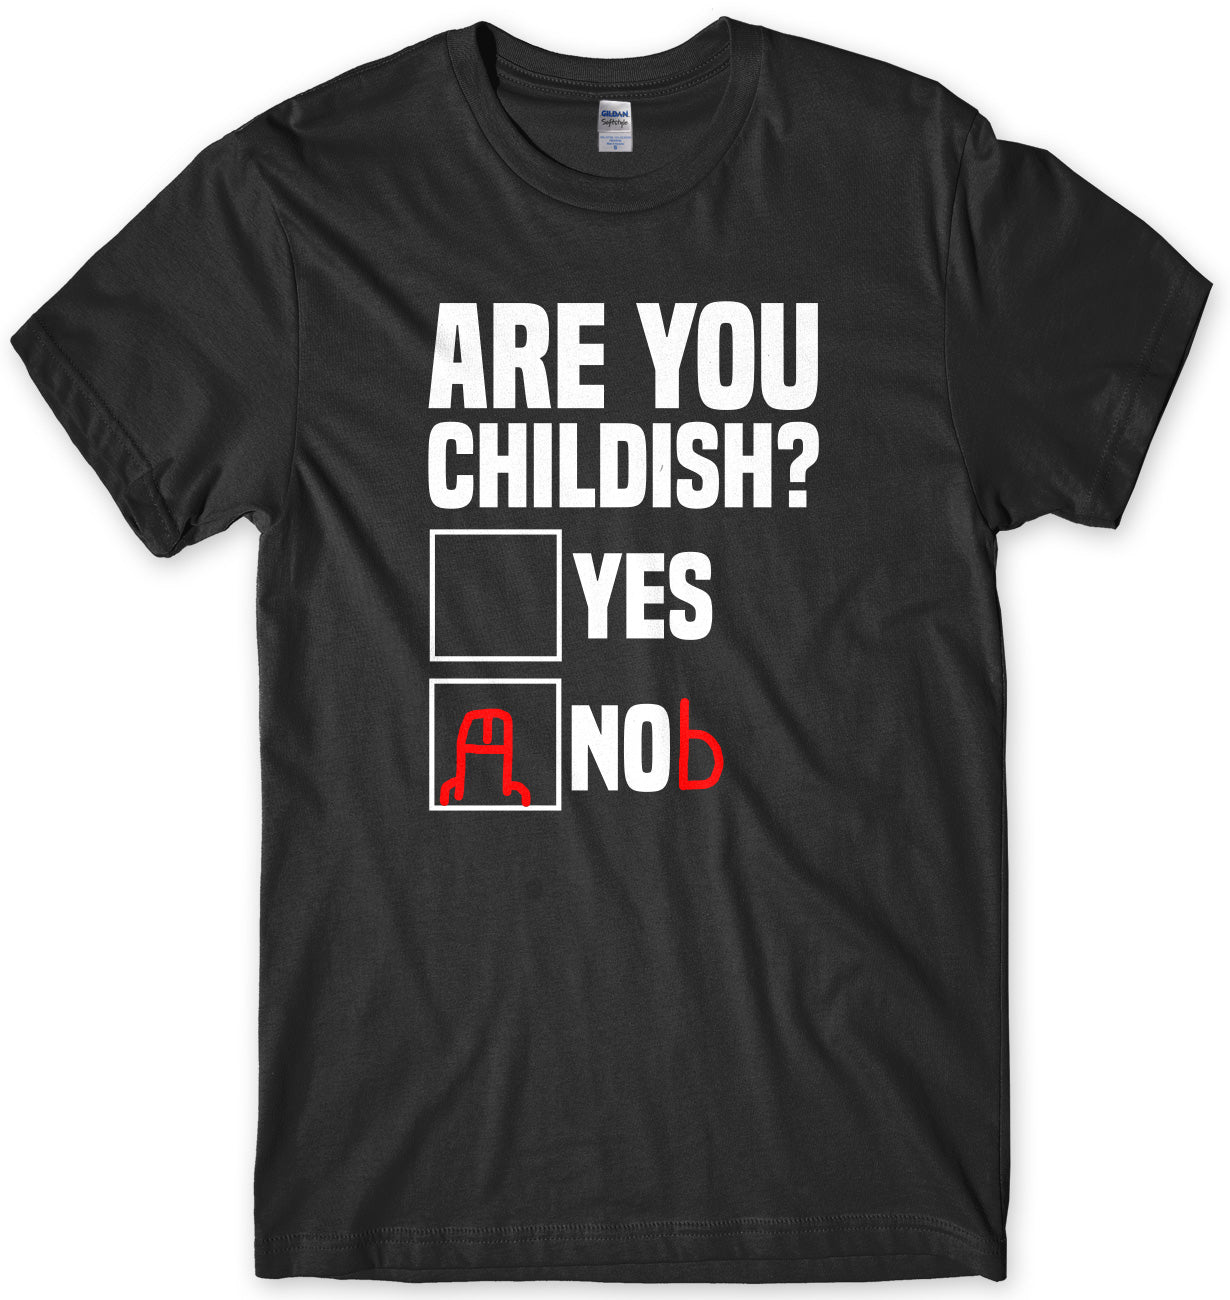 Are You Childish? Mens Unisex T-Shirt